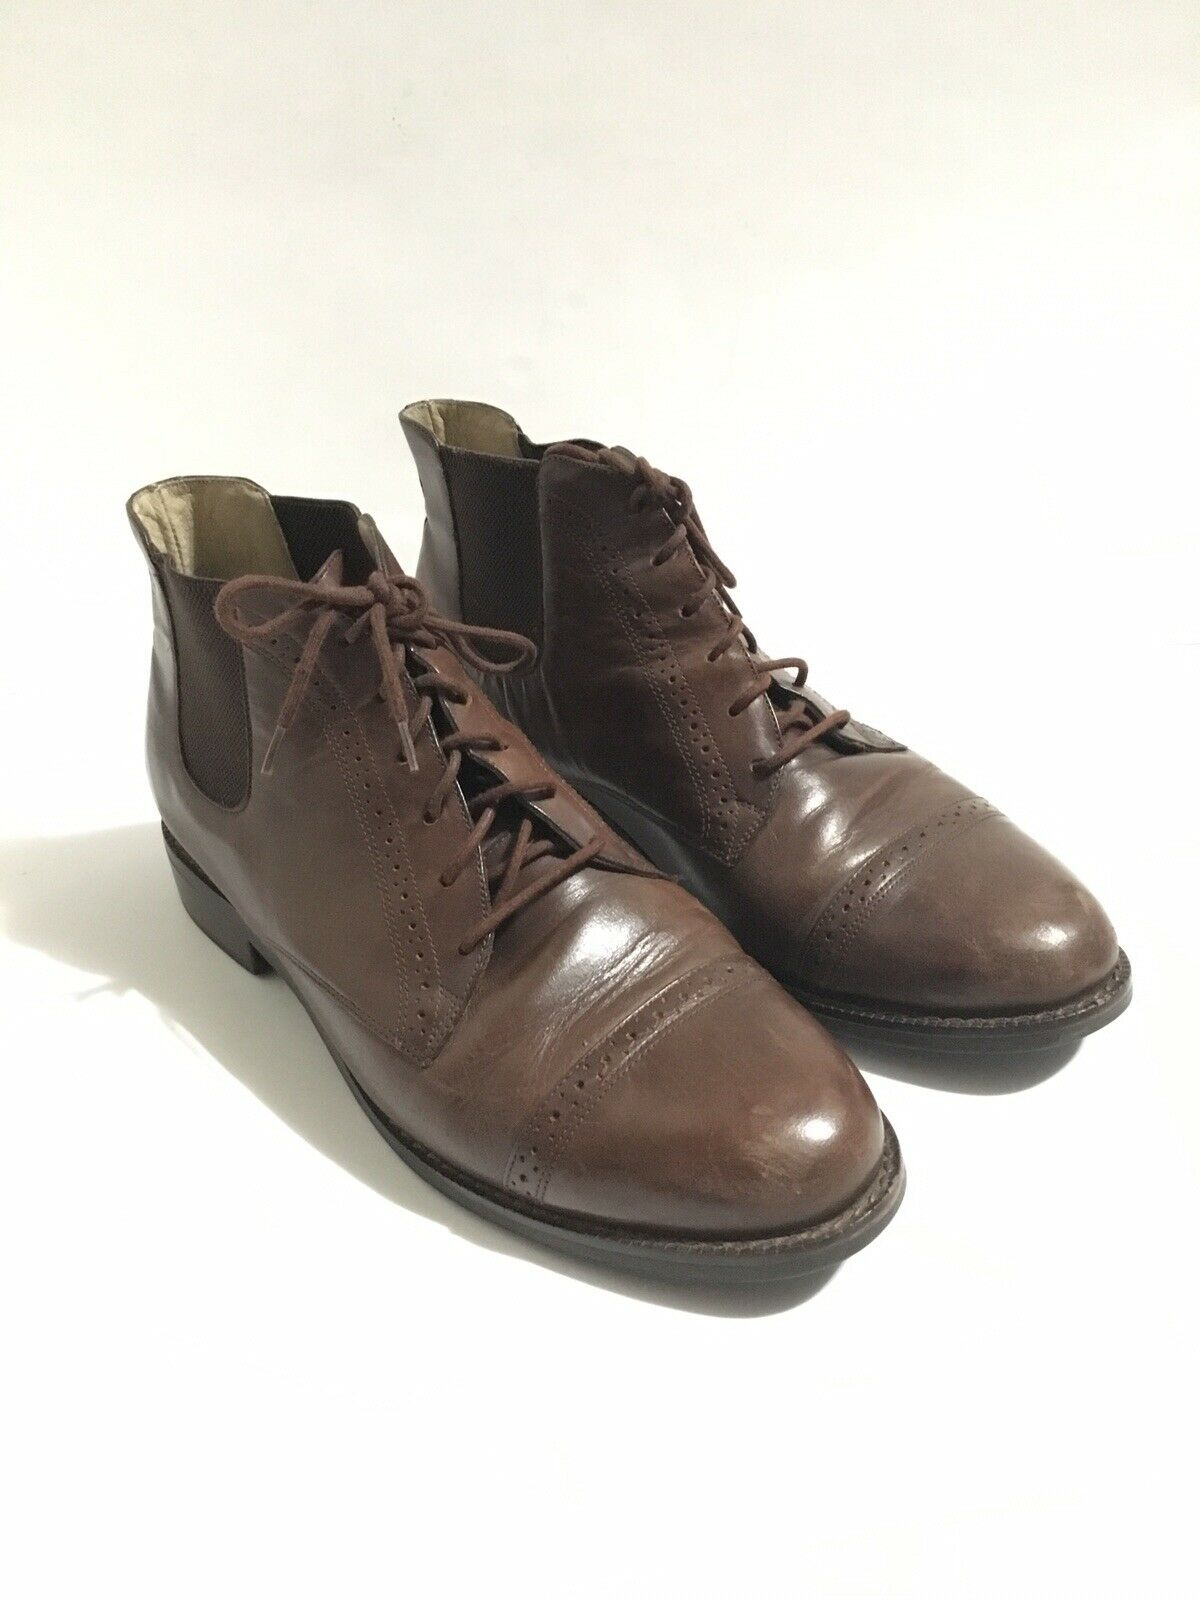 Ariat Leather shoes Ankle Lace Up Cap Toe Ridding Brazil Dark Brown Women's 9M